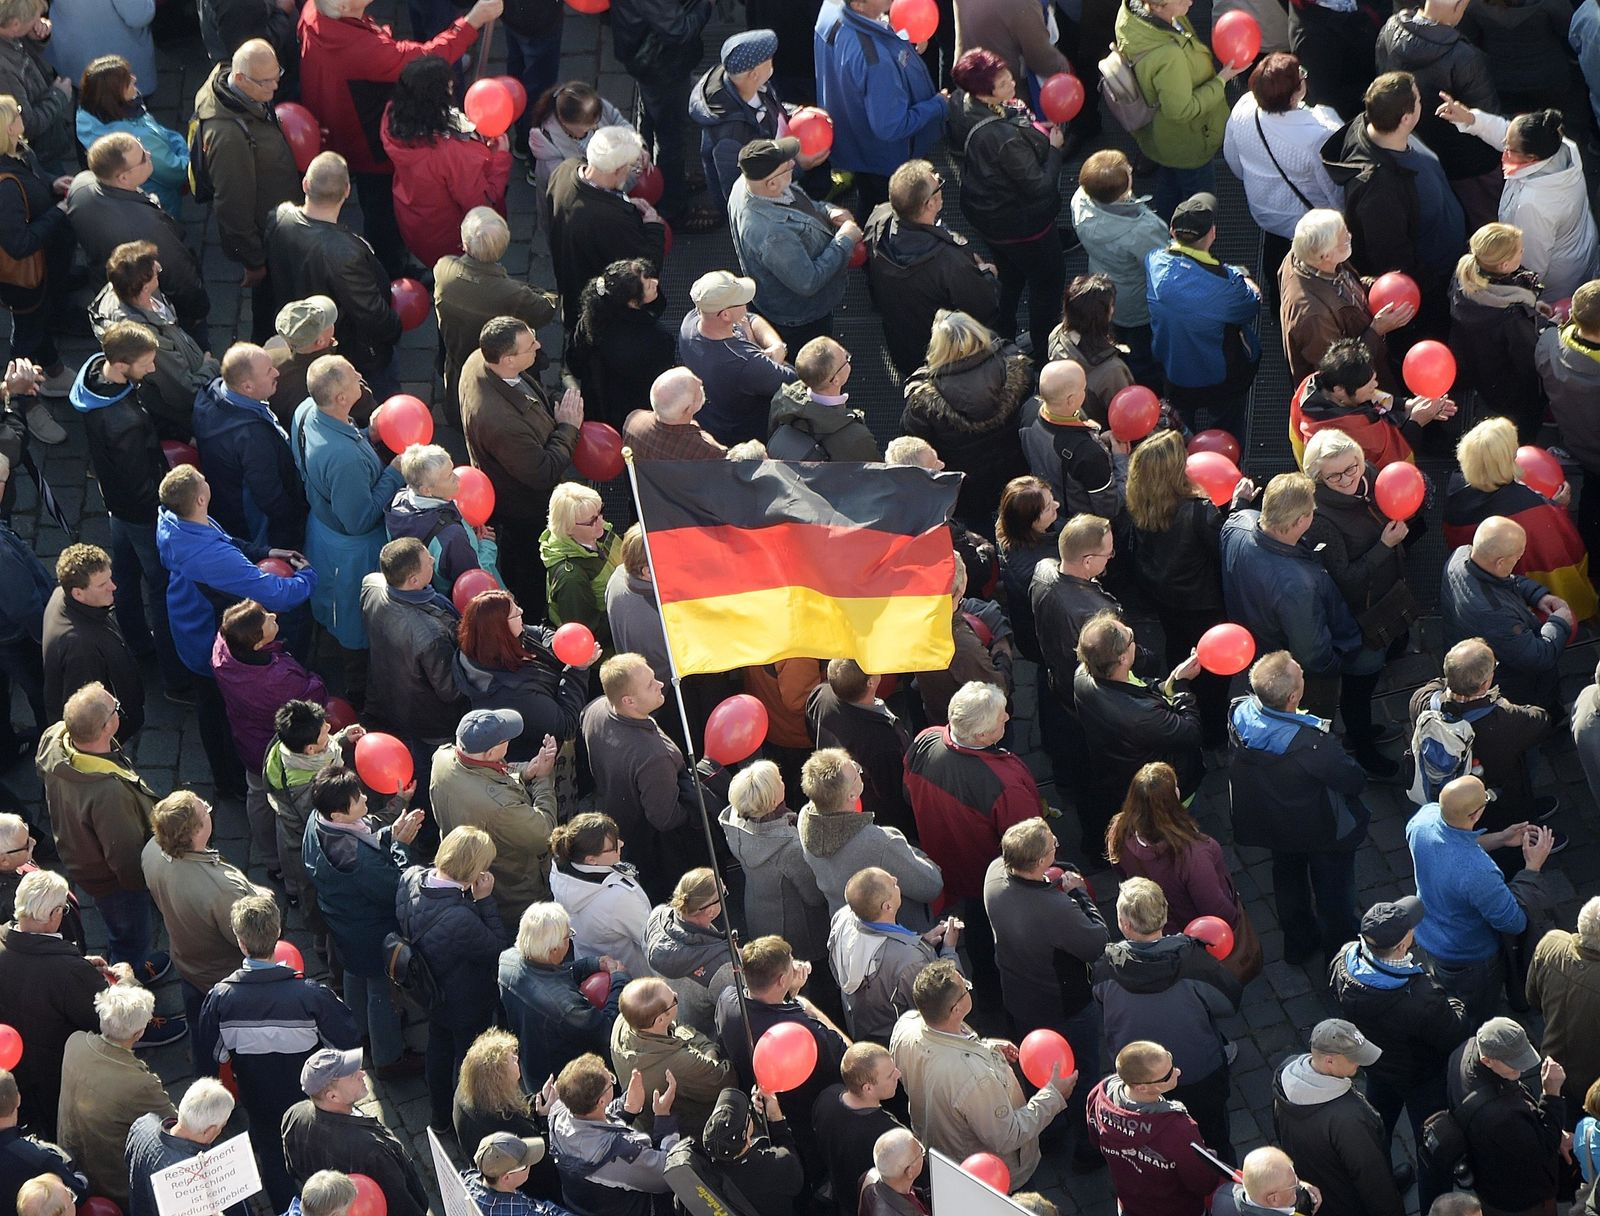 Germany Pegida